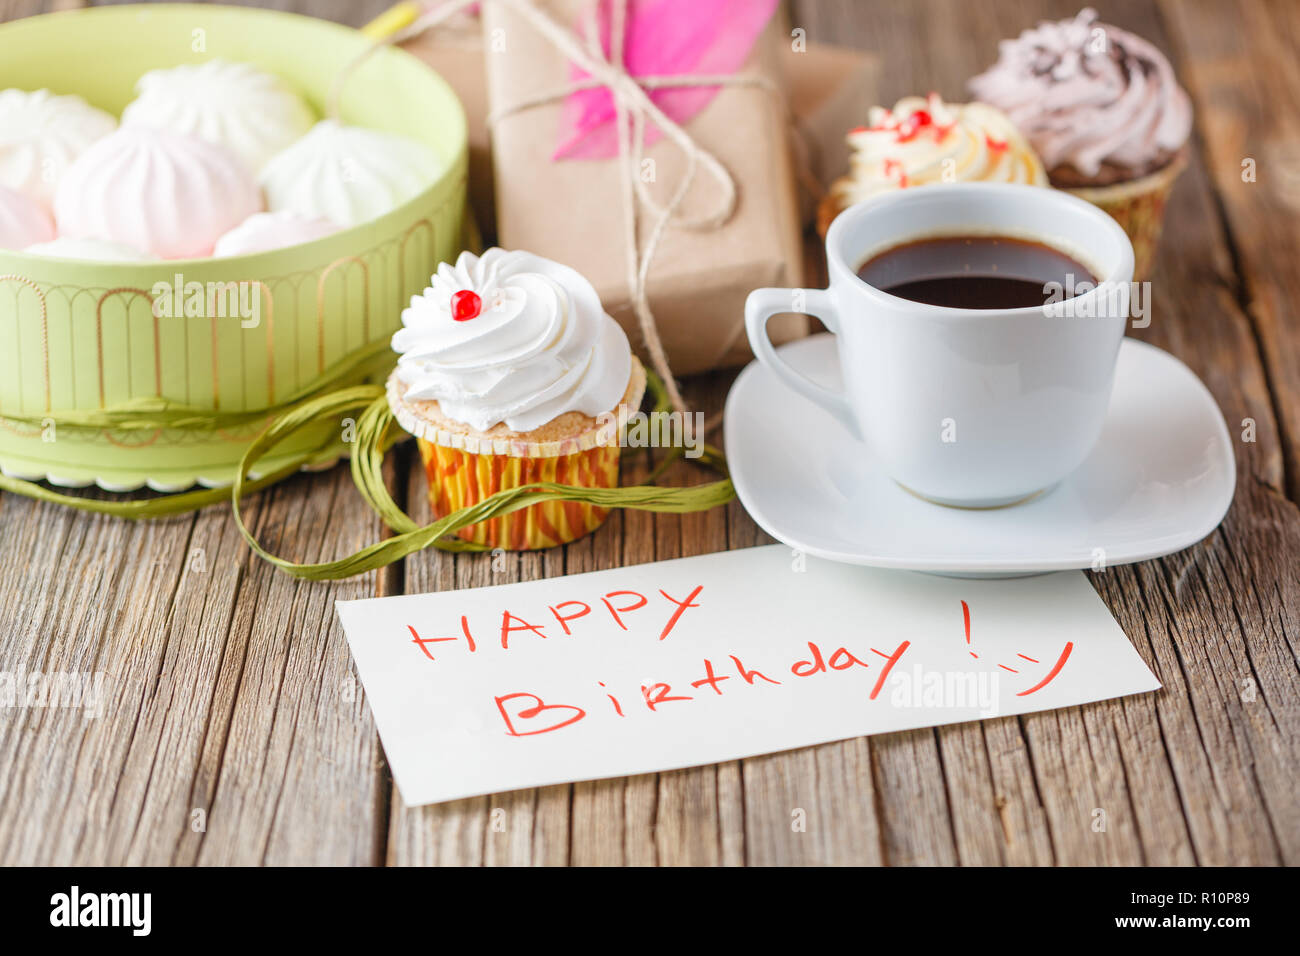 Cup Of Coffee And Message Happy Birthday With Sweets Stock Photo Alamy